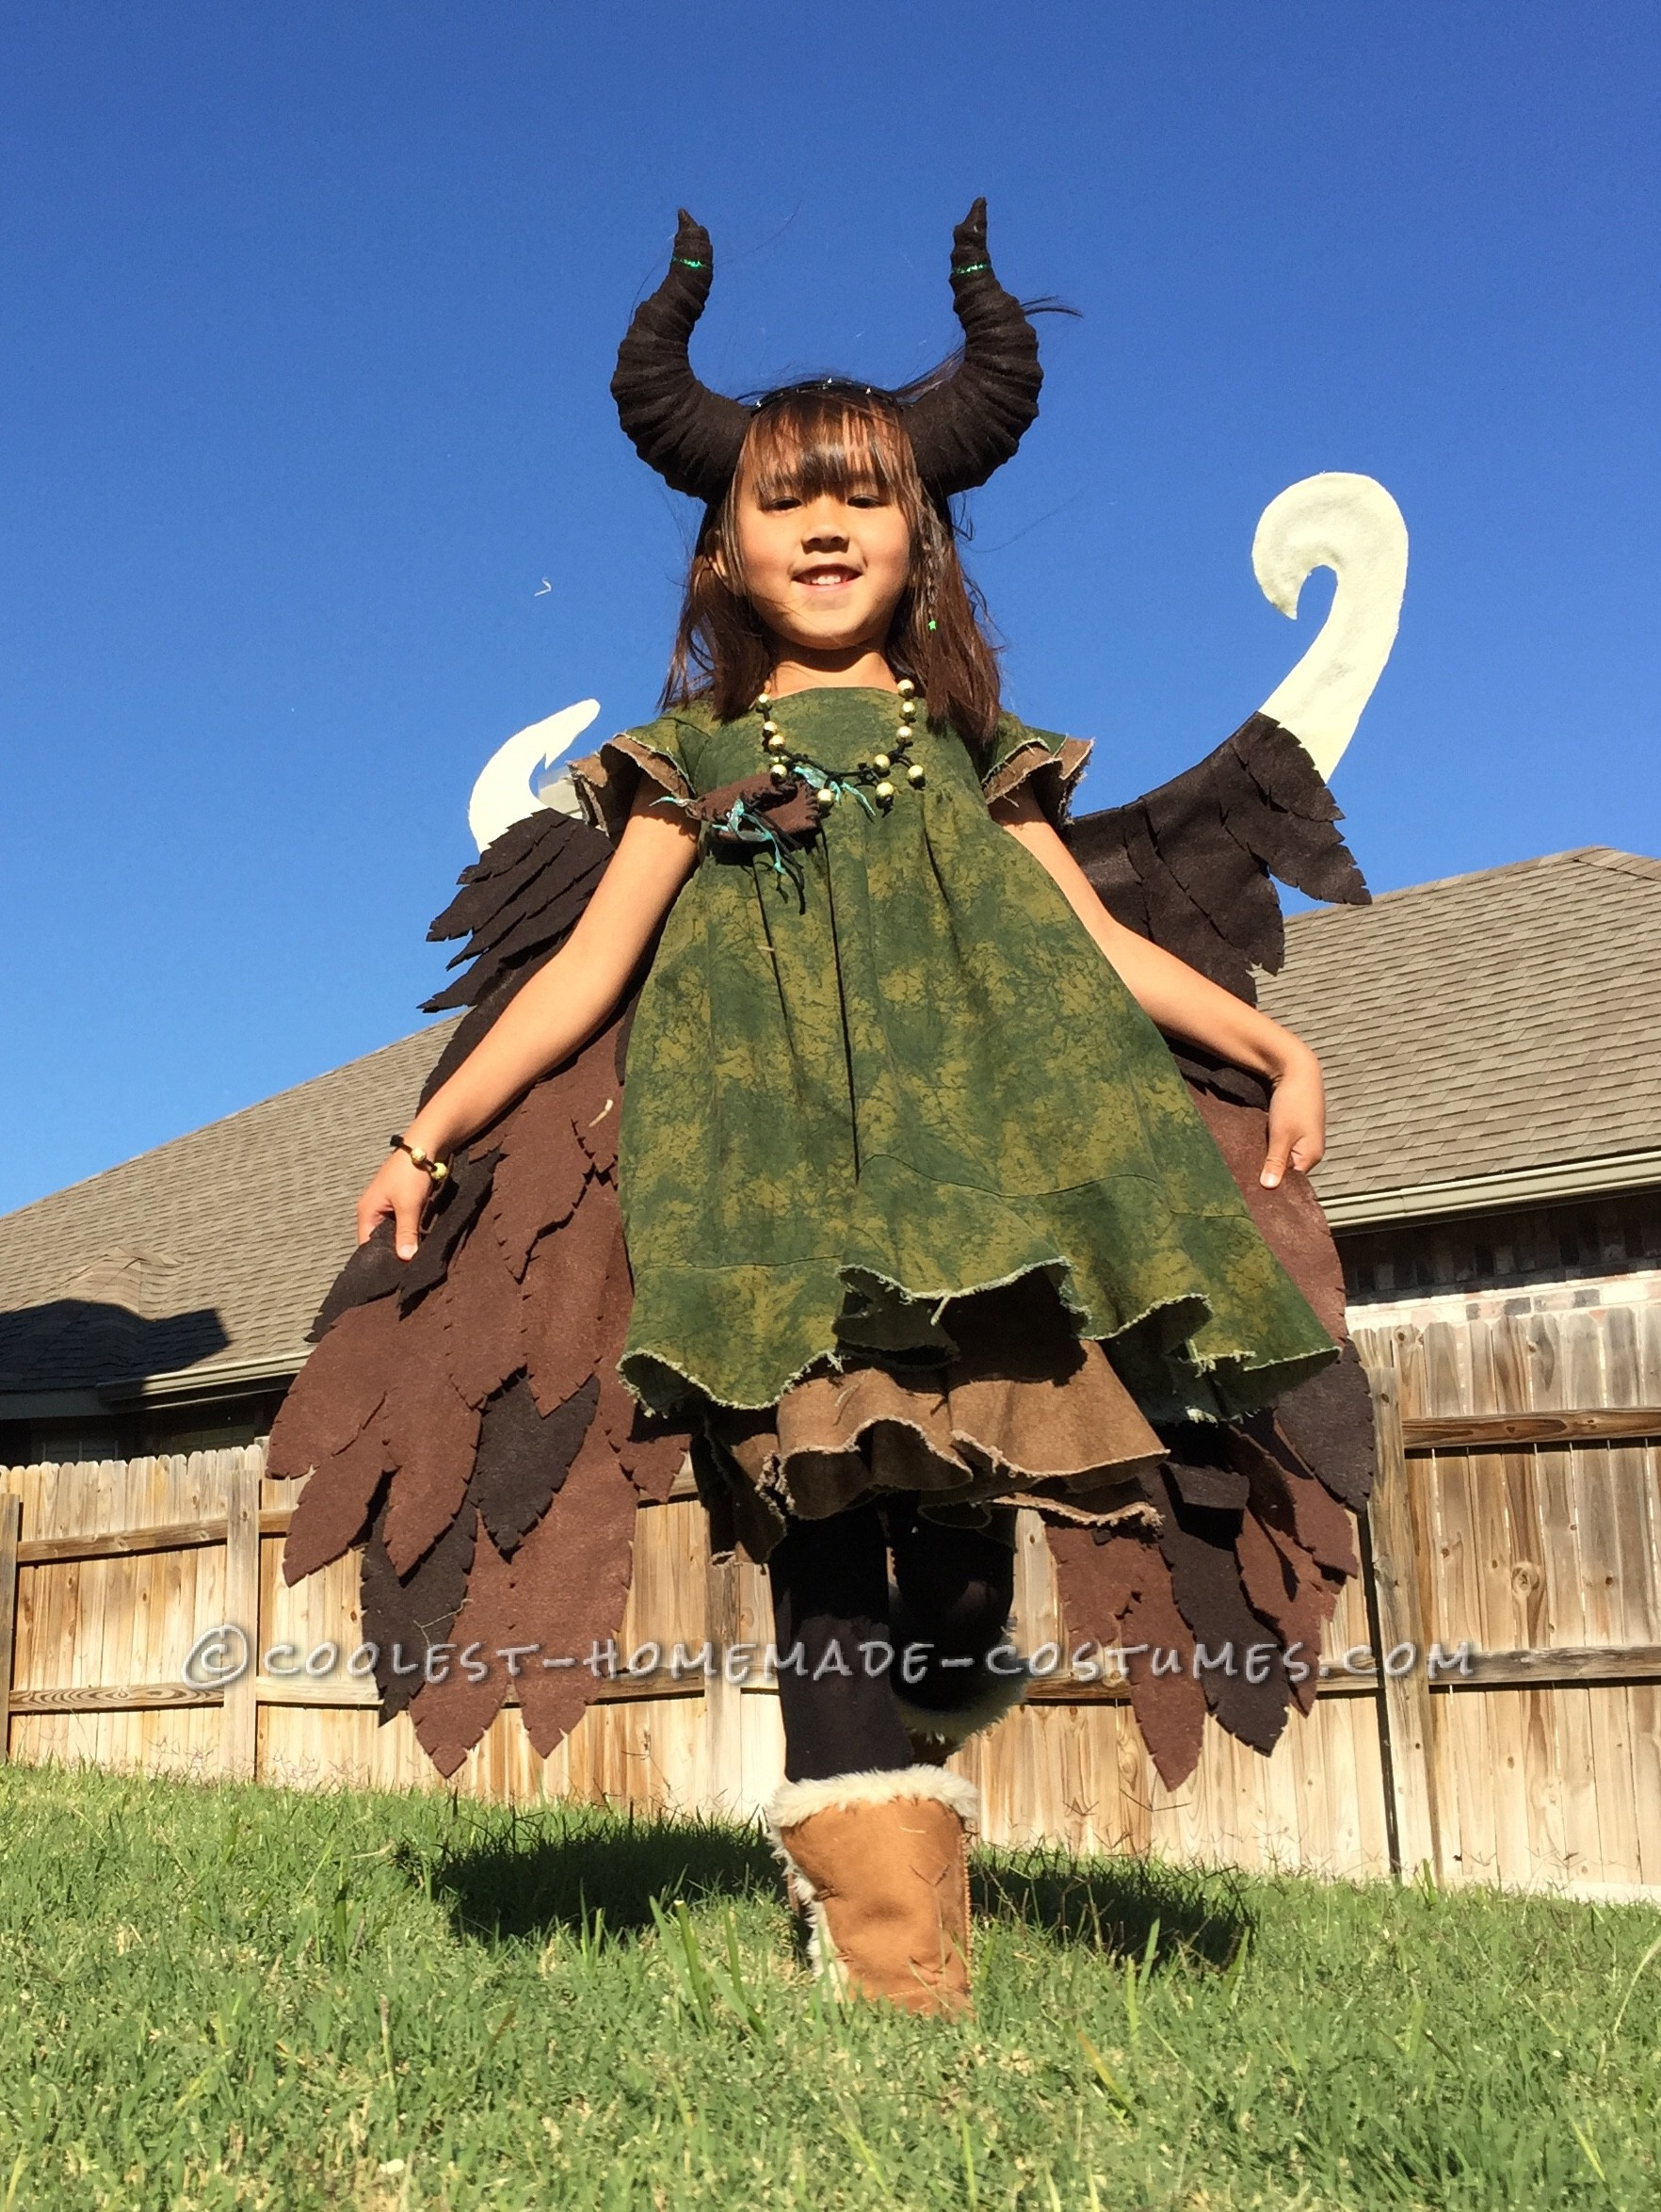 Young Homemade Maleficent Costume - Only If She Could Fly!